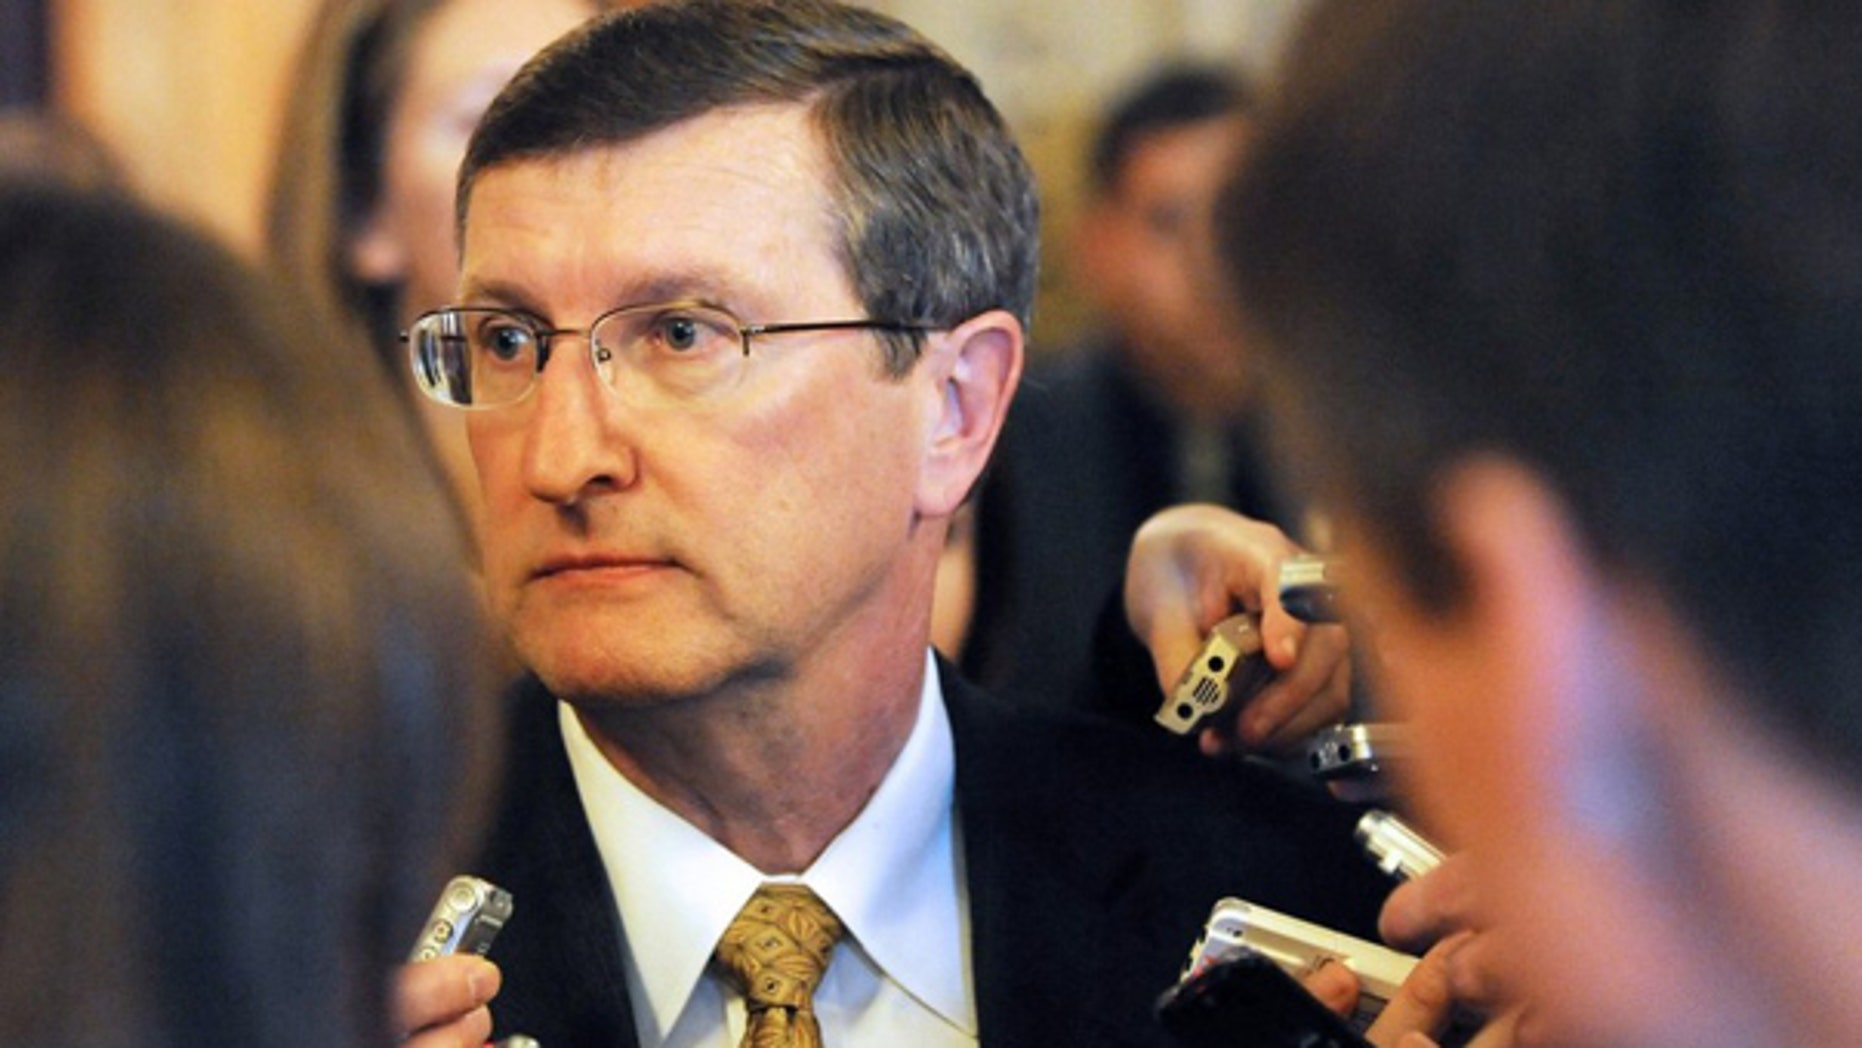 FILE: Sen. Kent Conrad, D-N.D., seen here, was to announce his retirement Tuesday.